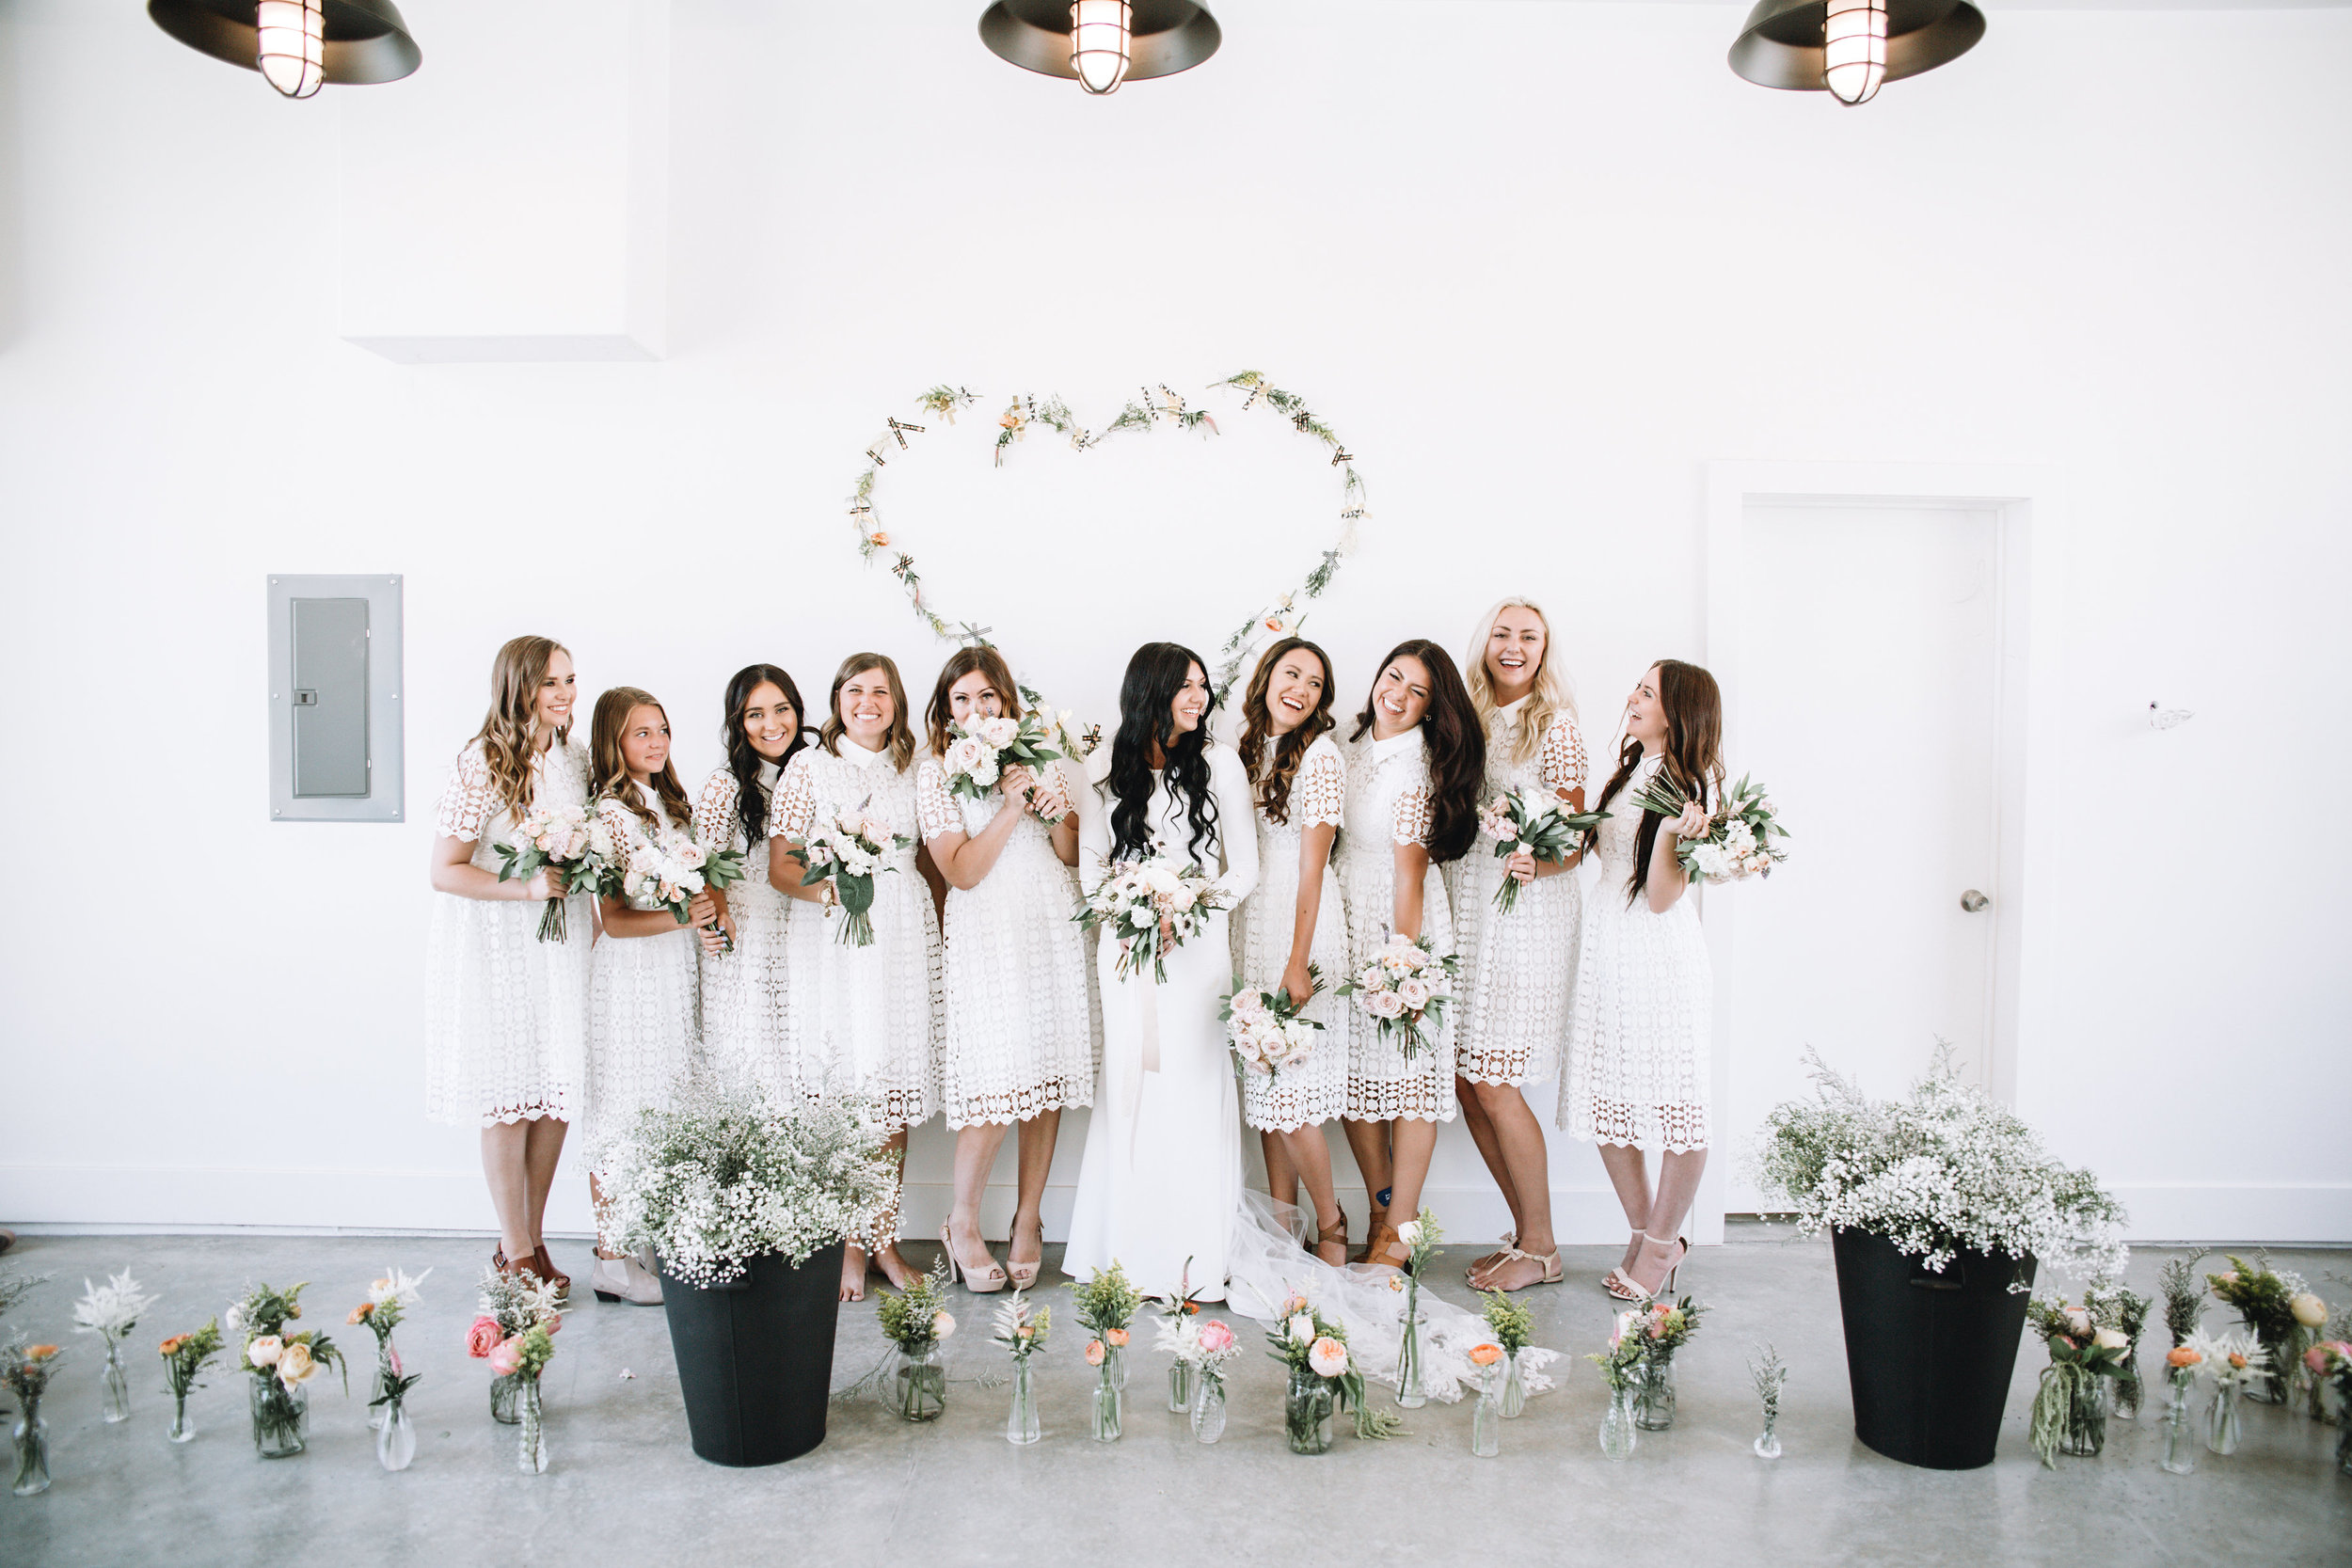 Bride + bridesmaids + white dresses